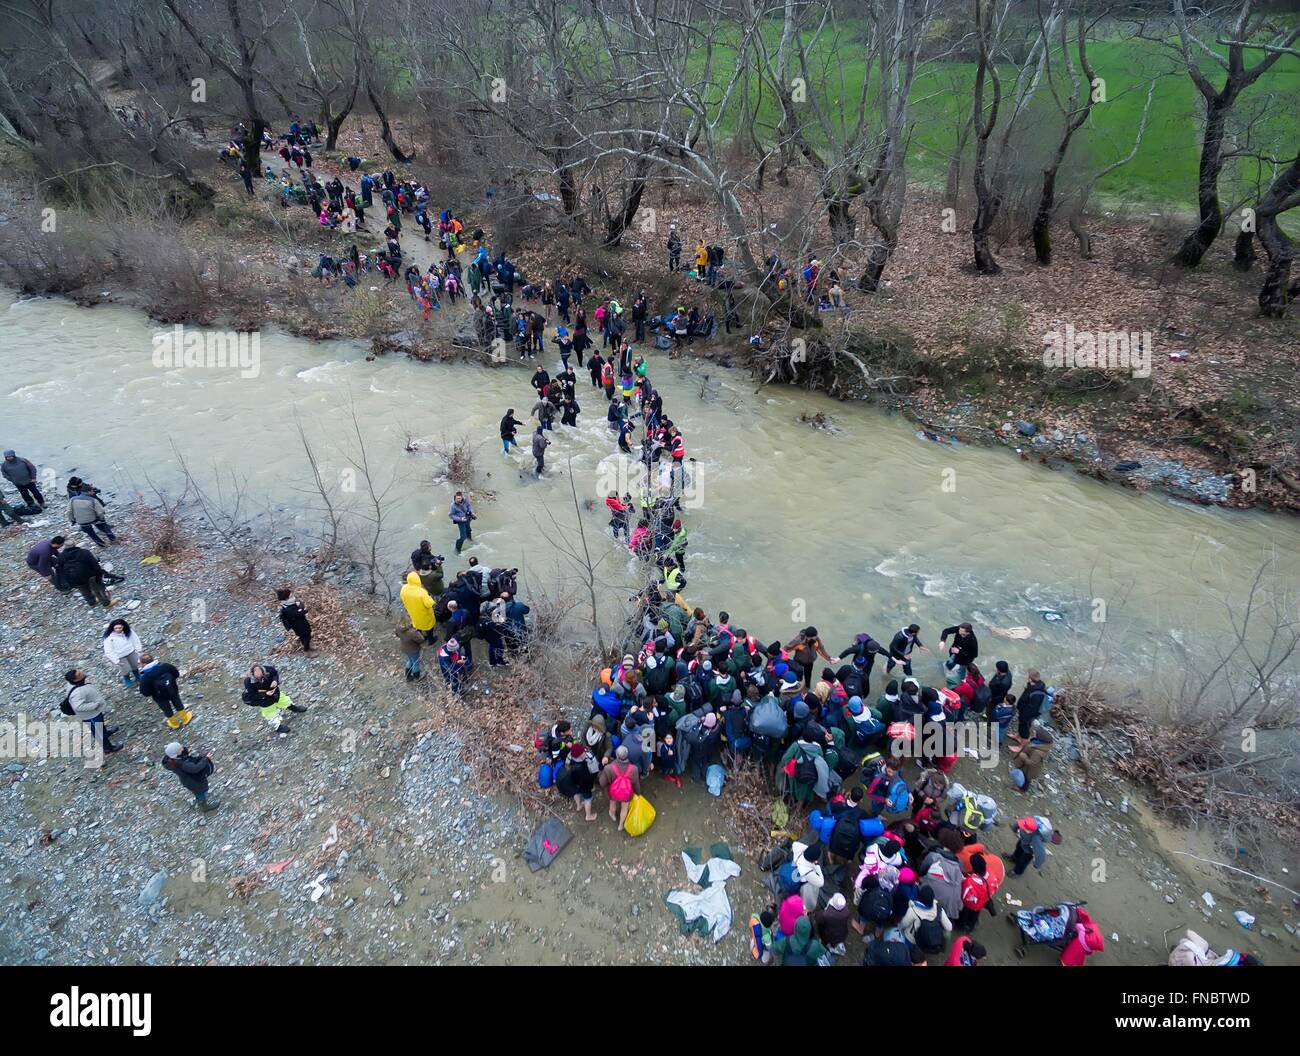 Chamilo, Greece. 14th March, 2016. Refugees try to cross a stream near the Greek village of Chamilo on March 14, - Stock Image